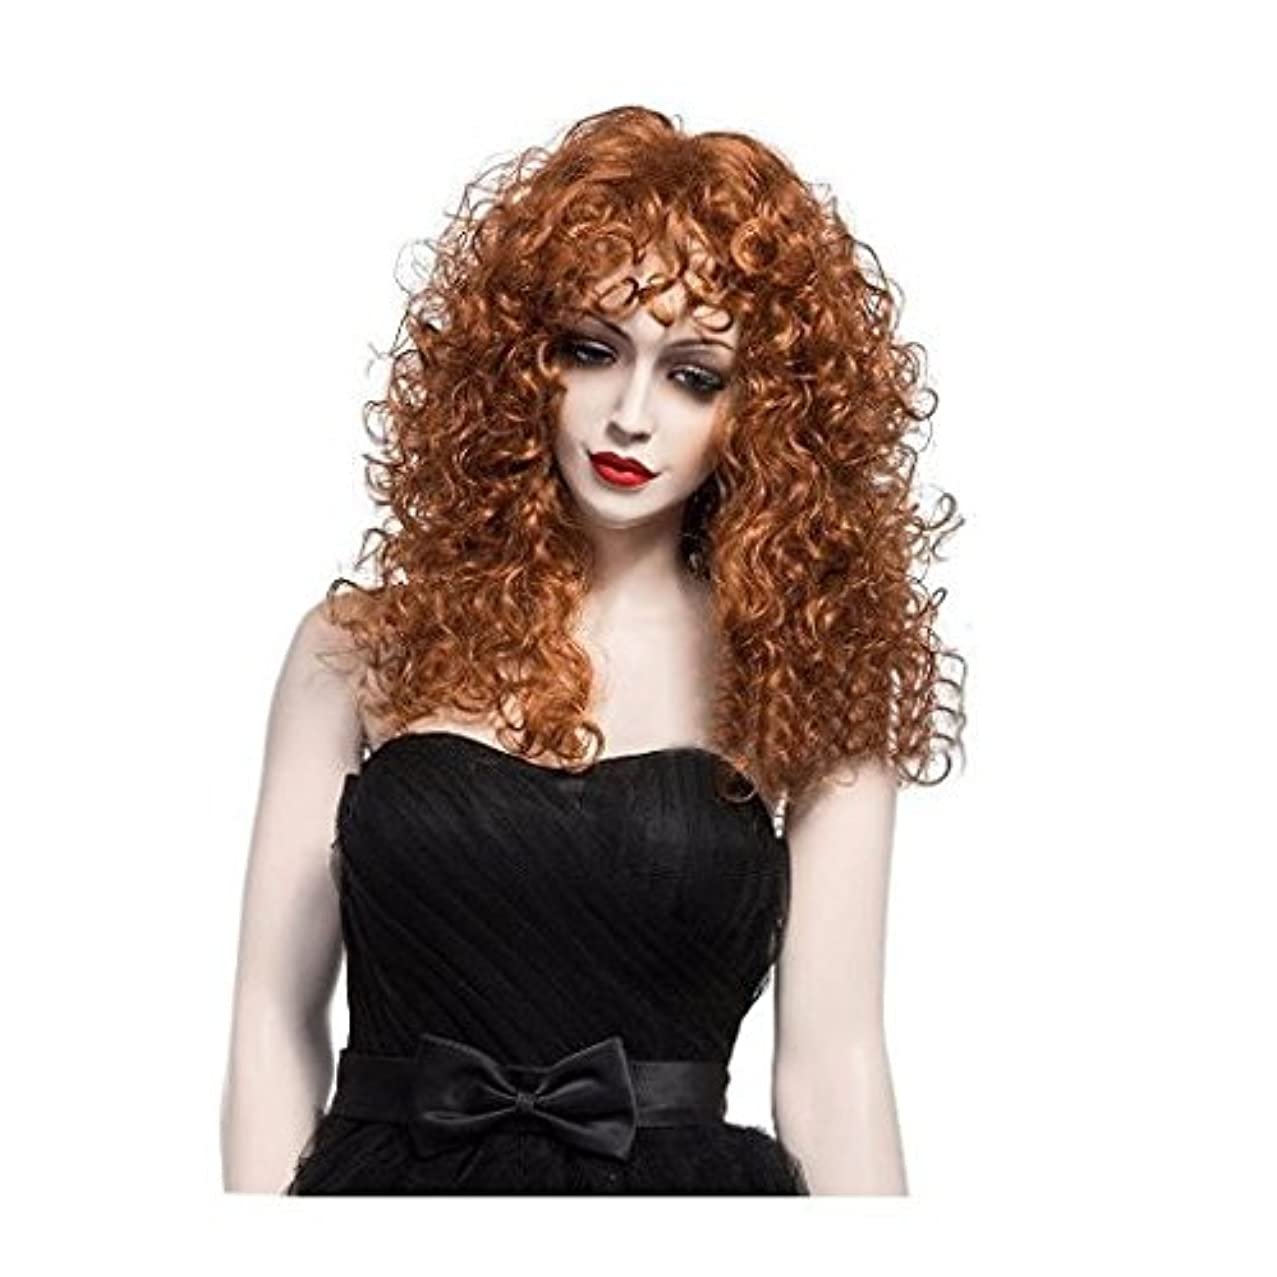 MELADY?(Free Cap)22'' Fashion Casual Brown Long Curly Hair Synthetic Women Girls Lady Hair Replacement Wigs